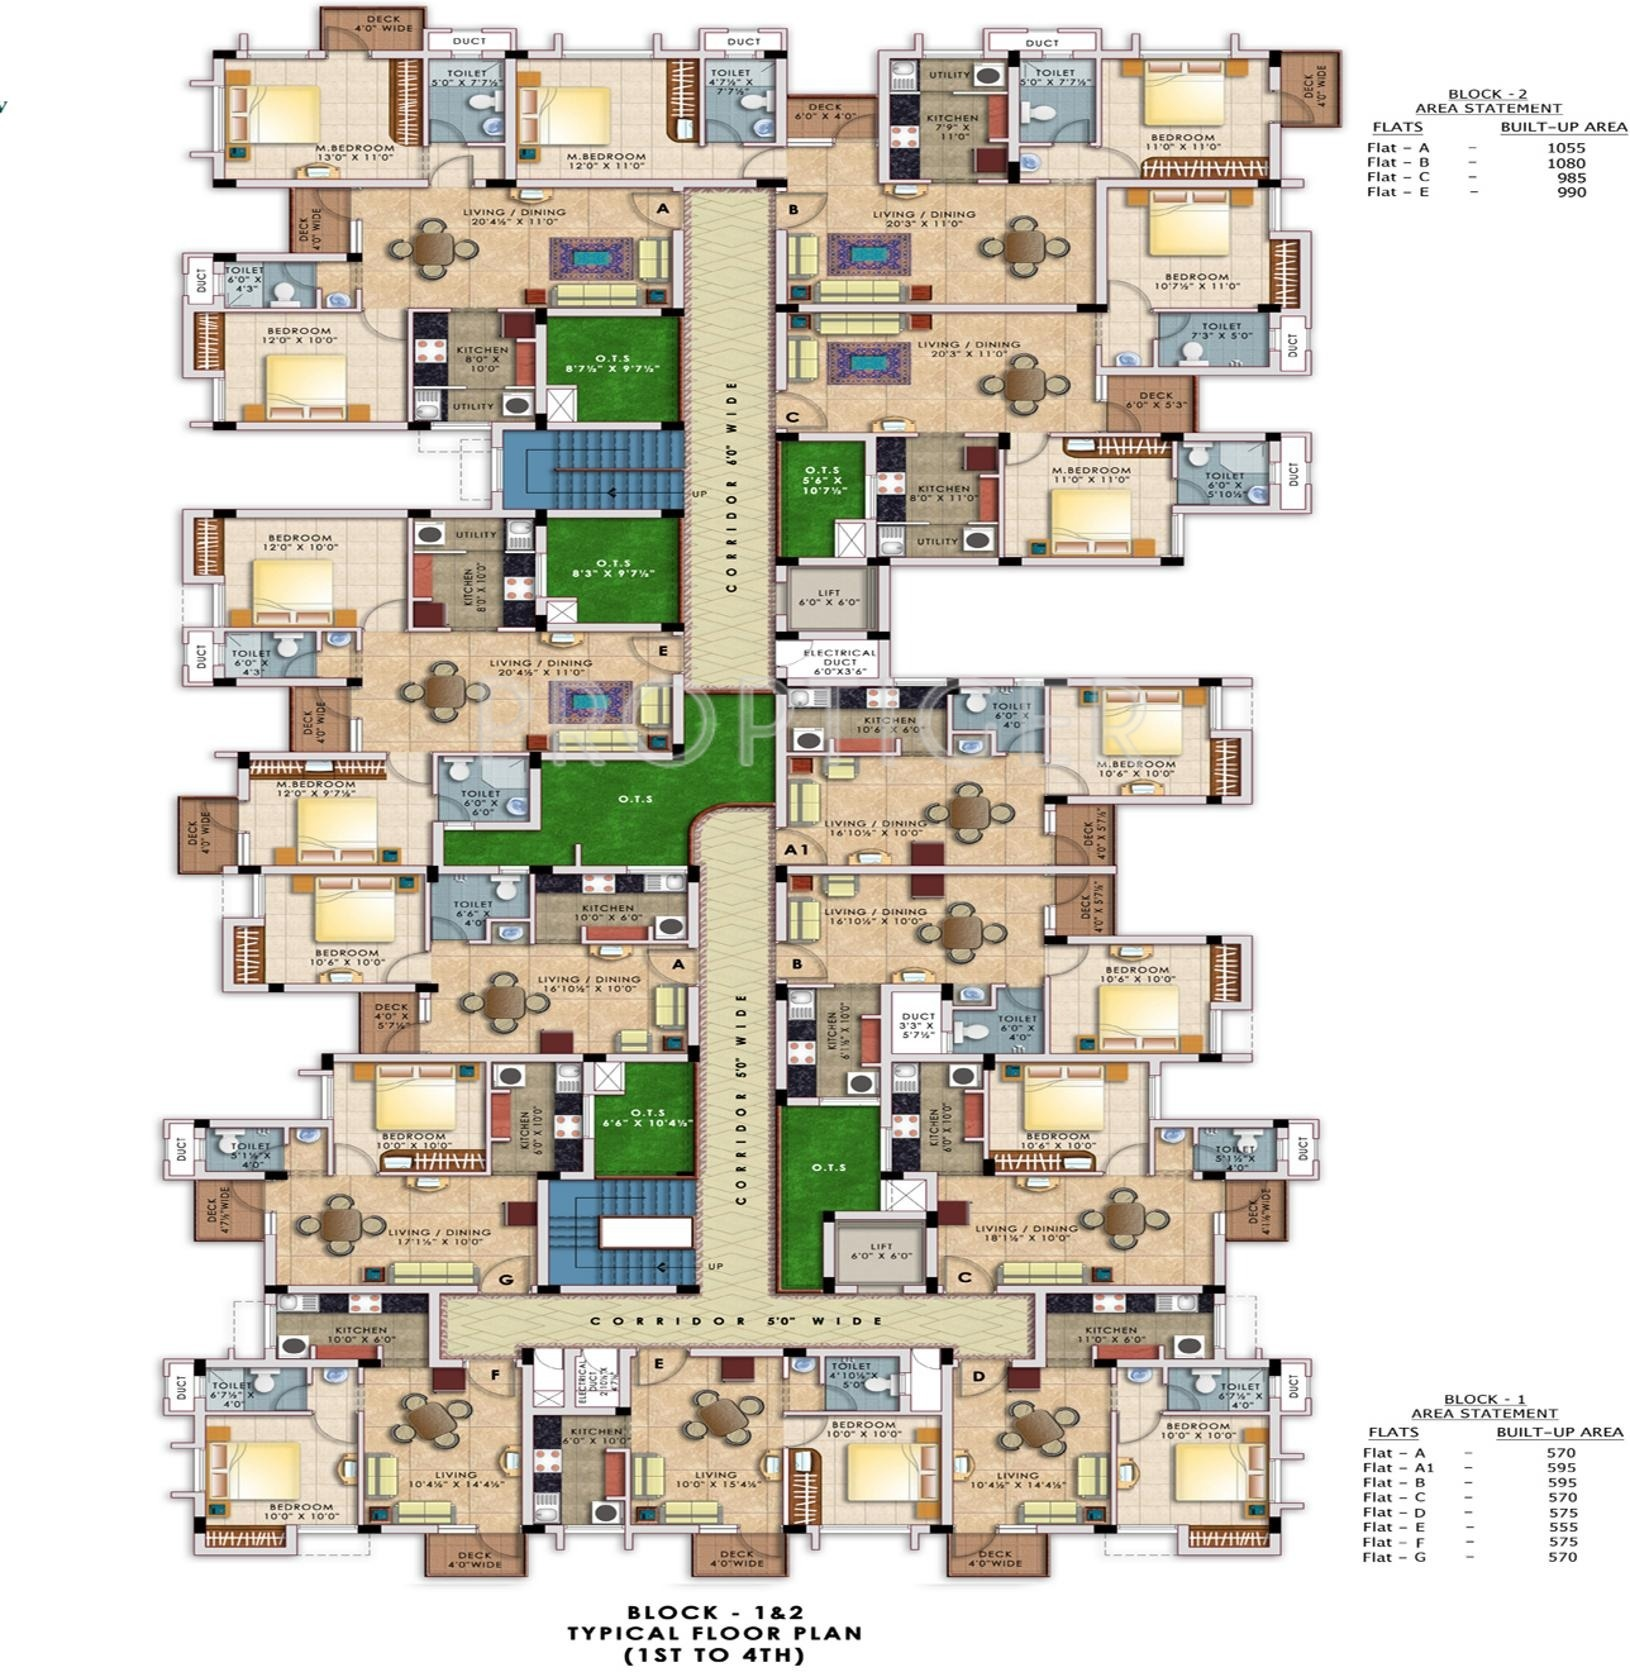 1705 sq ft 3 BHK 3T Apartment for Sale in Doshi Housing Nakshatra